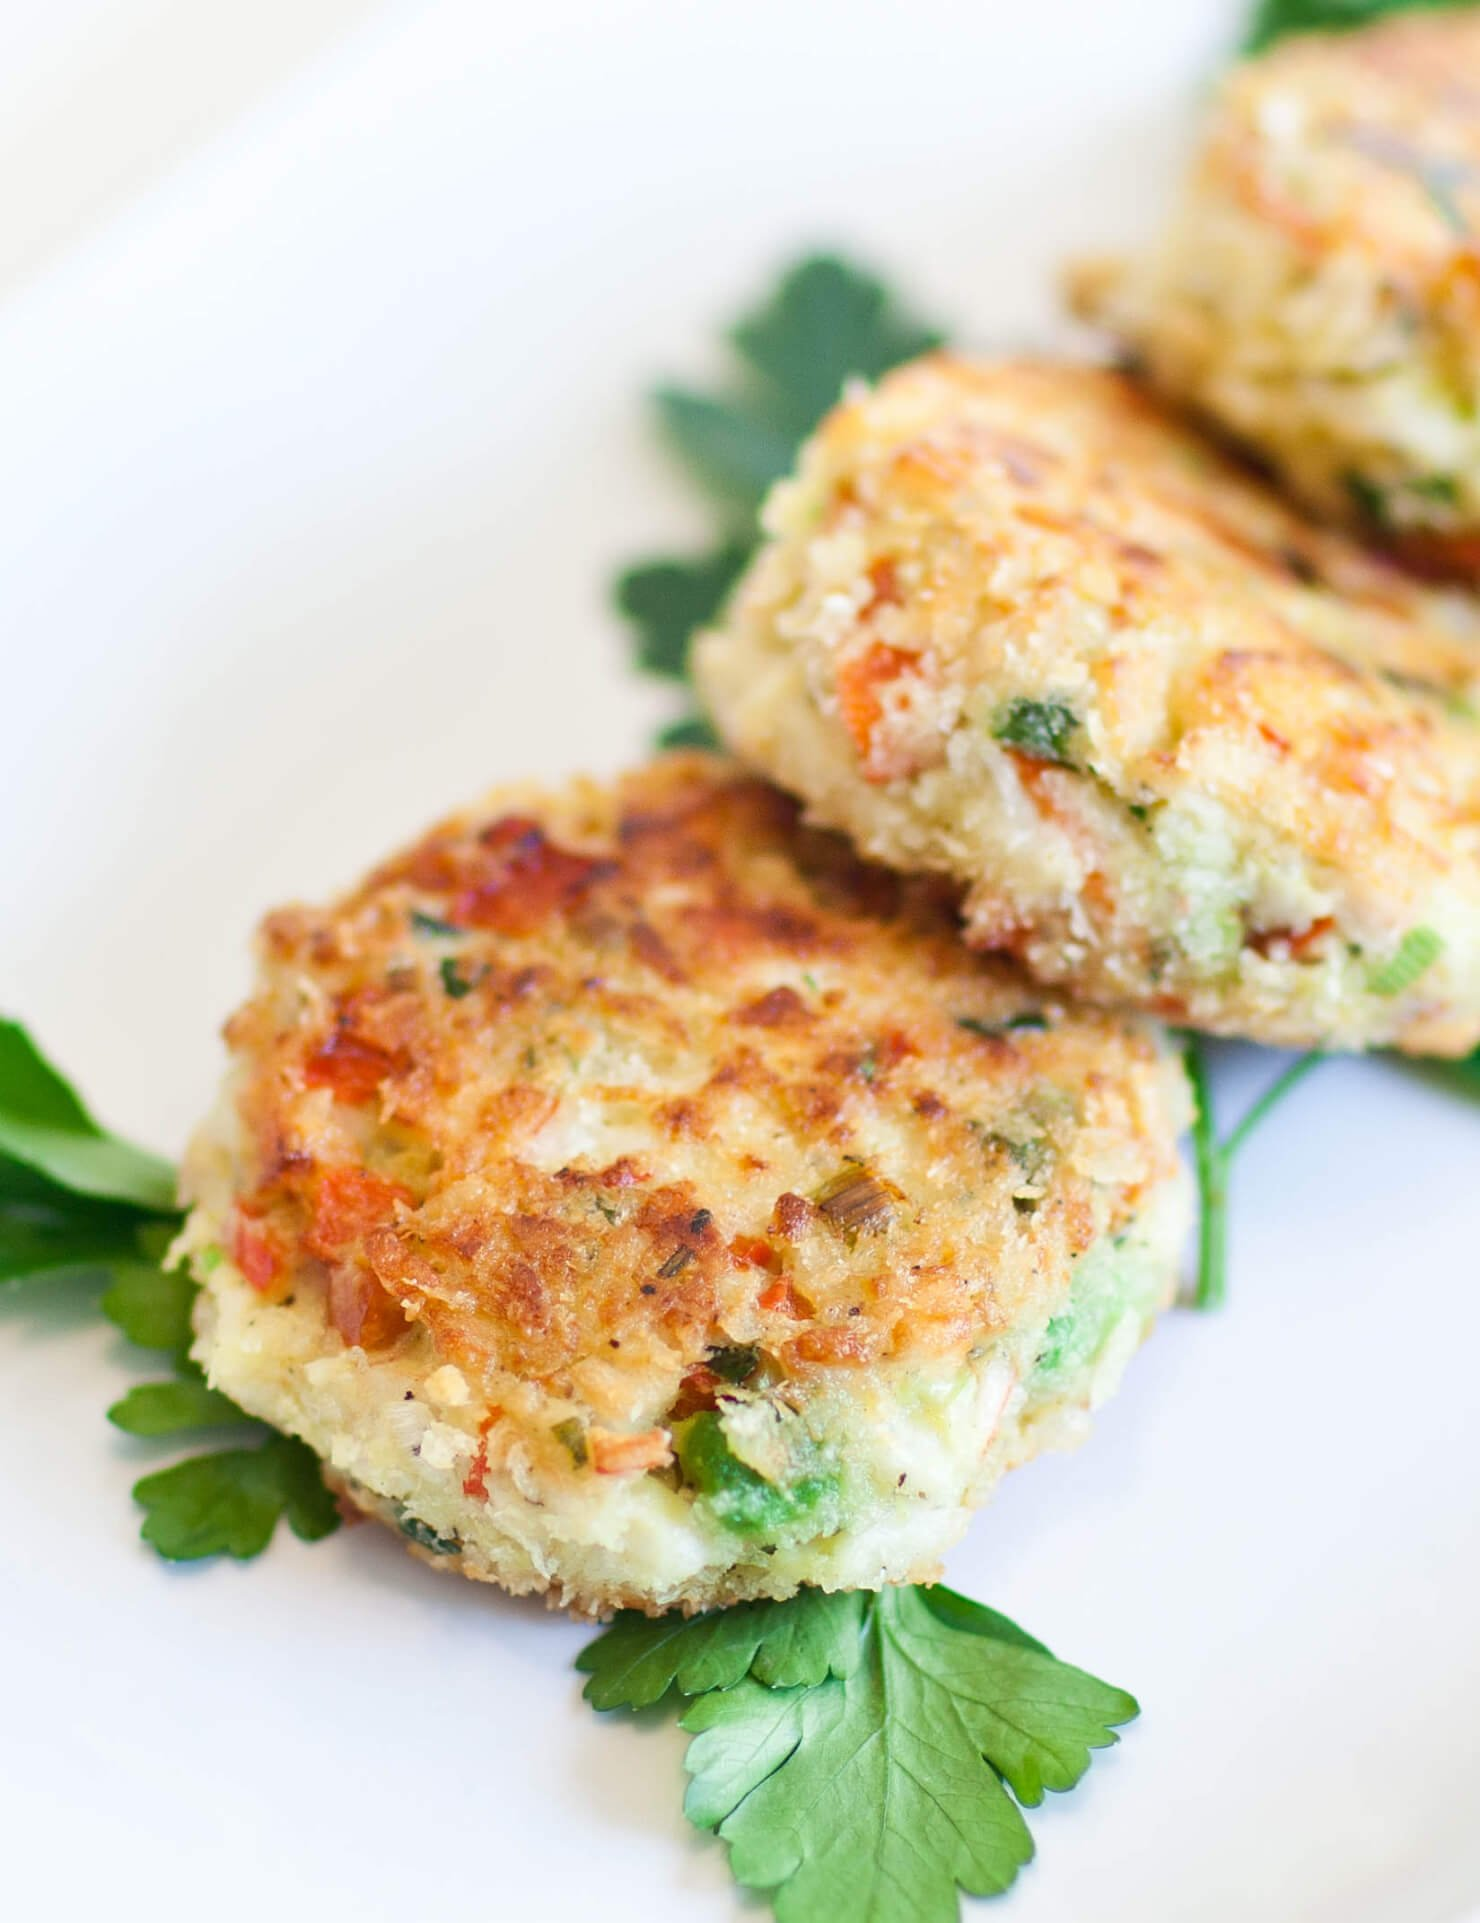 World's Best Crab Cakes